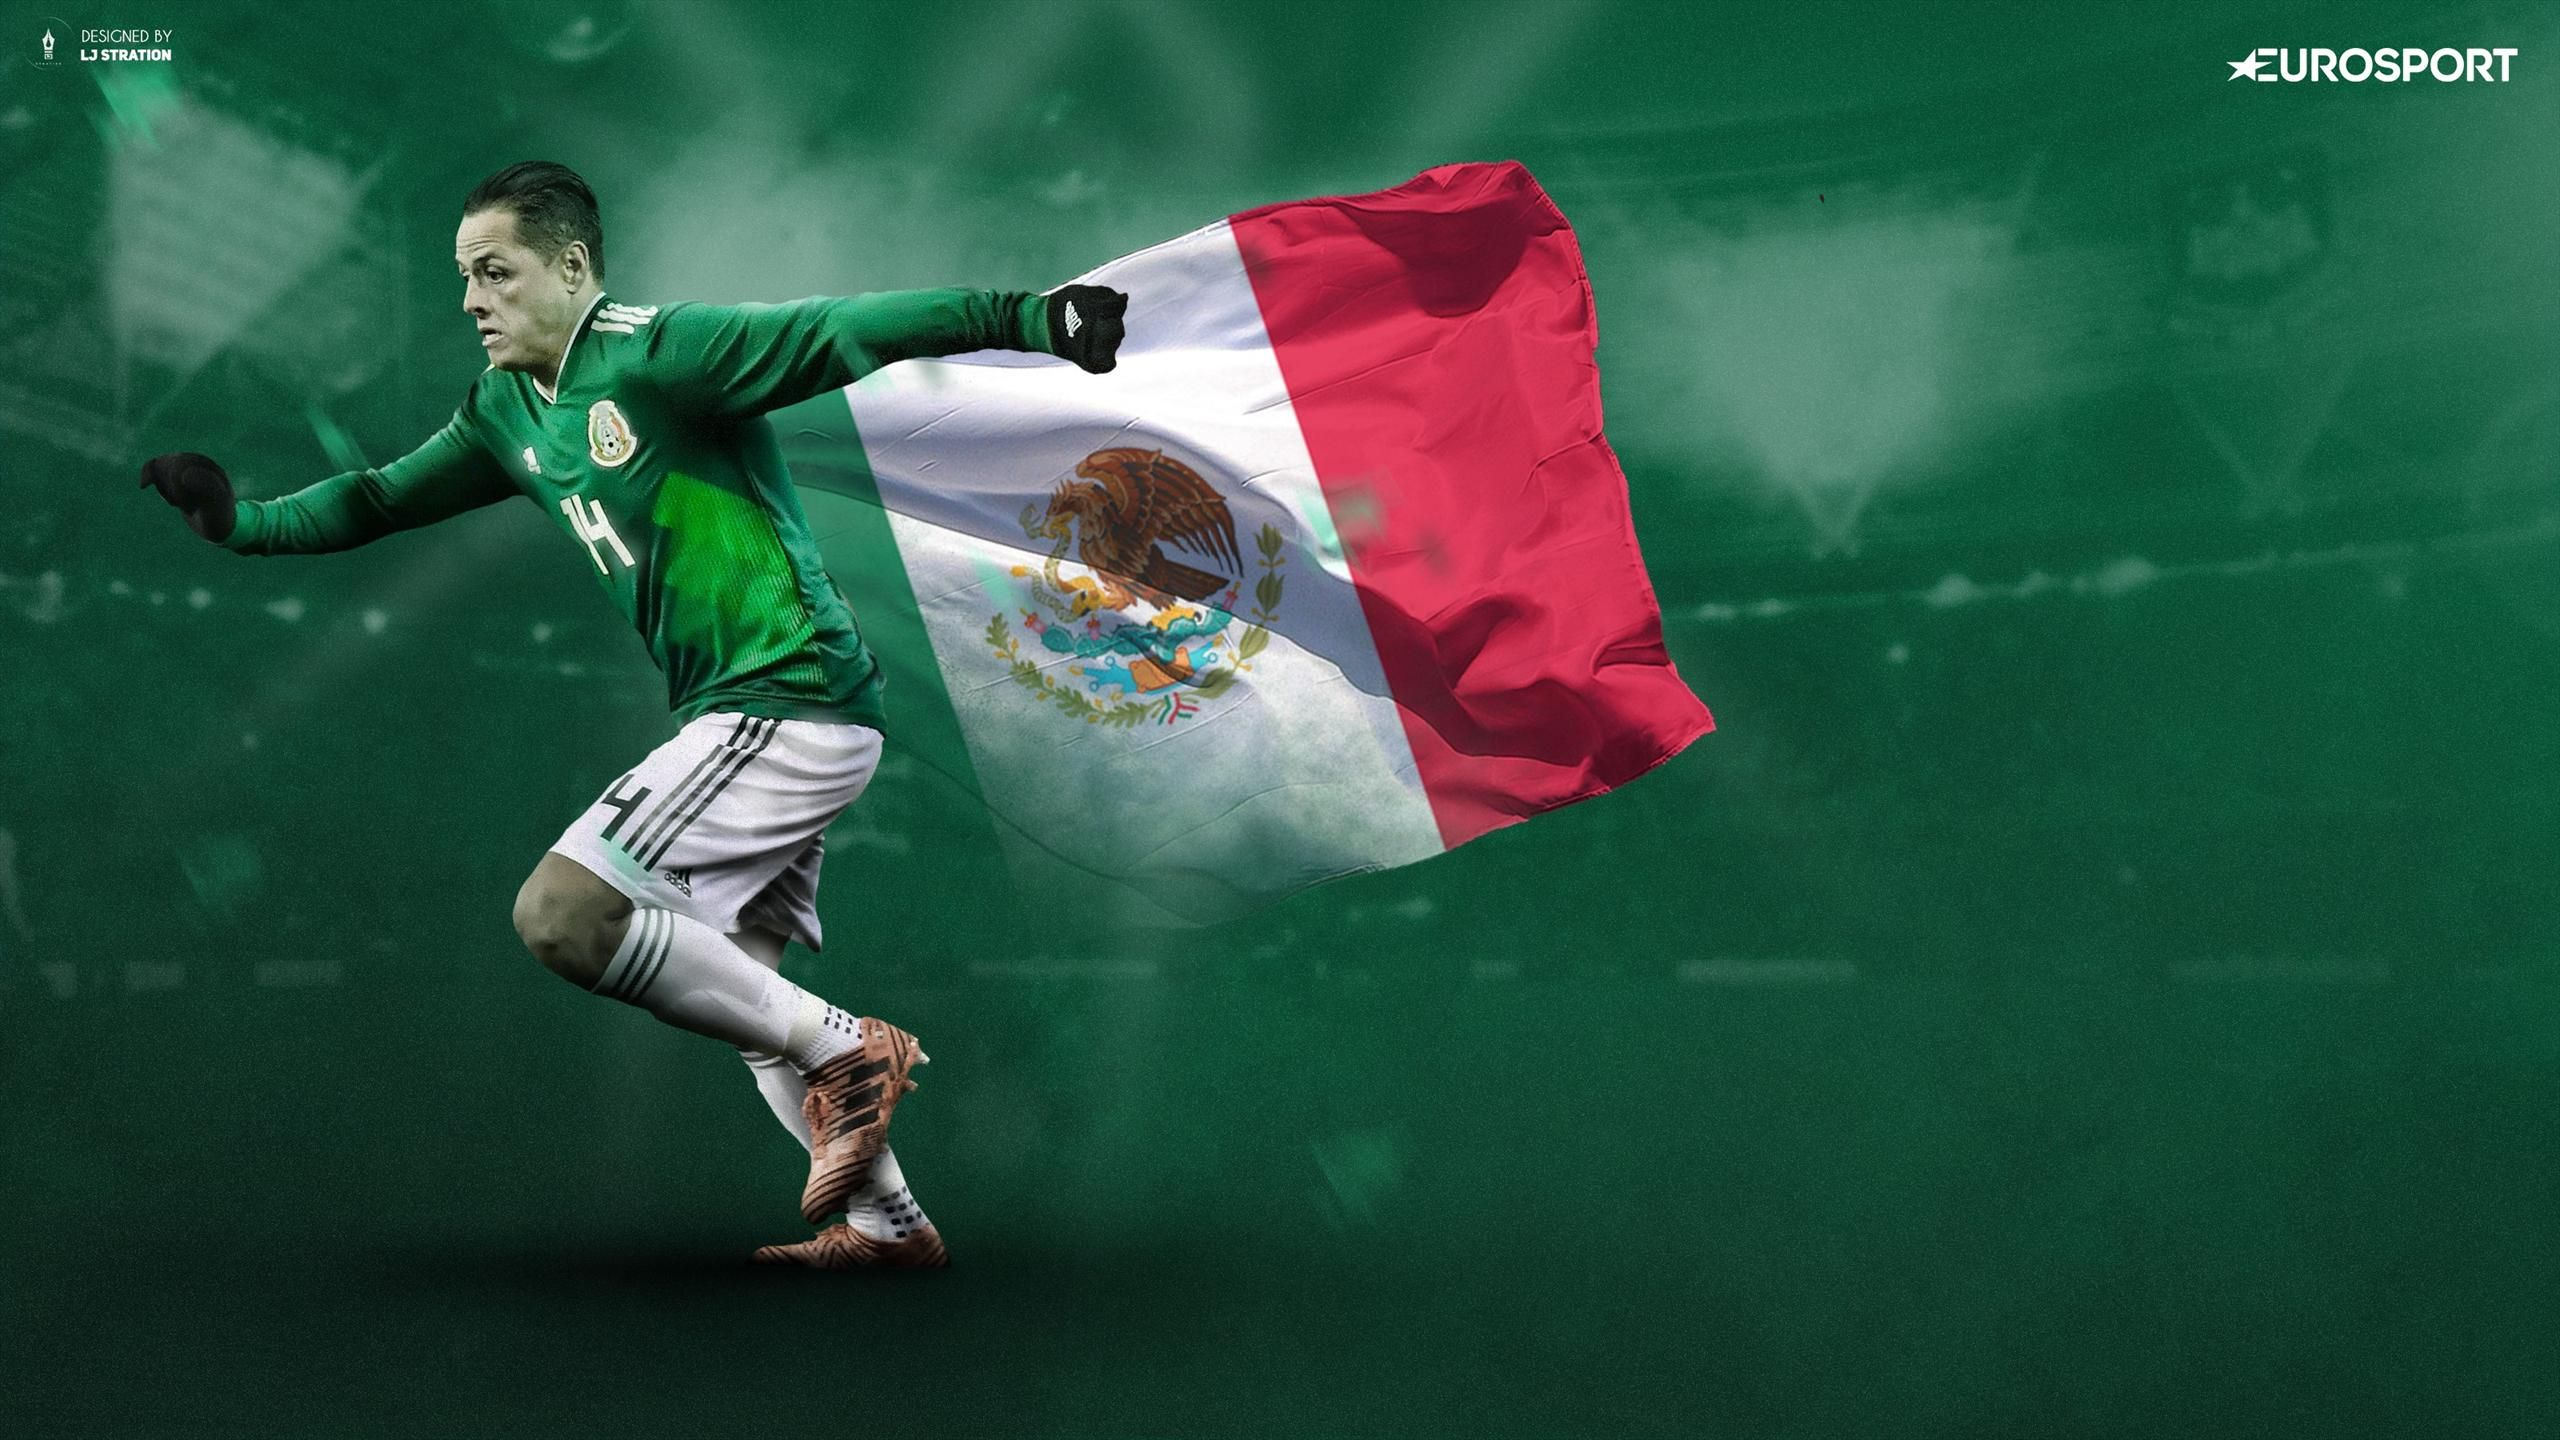 Javier Hernandez Mexico Wallpapers And Backgrounds - Mexico Soccer Team World Cup 2018 , HD Wallpaper & Backgrounds